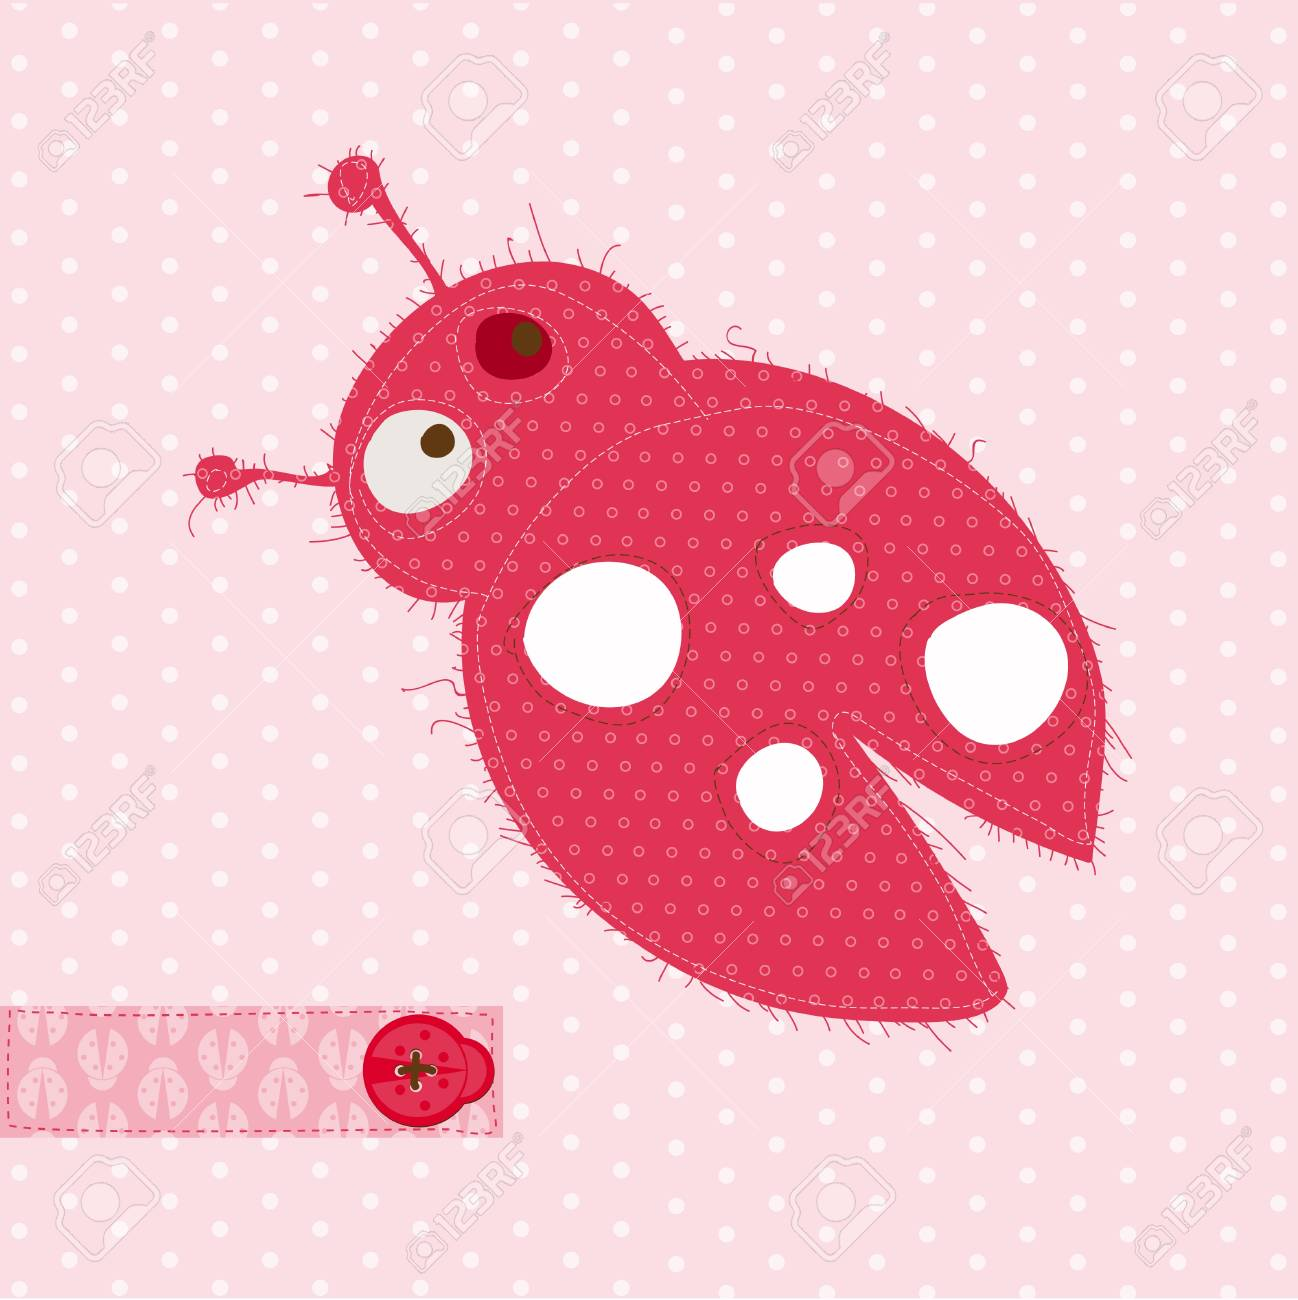 Greeting card with ladybug for scrapbook invitation celebration greeting card with ladybug for scrapbook invitation celebration with place for your text stopboris Image collections